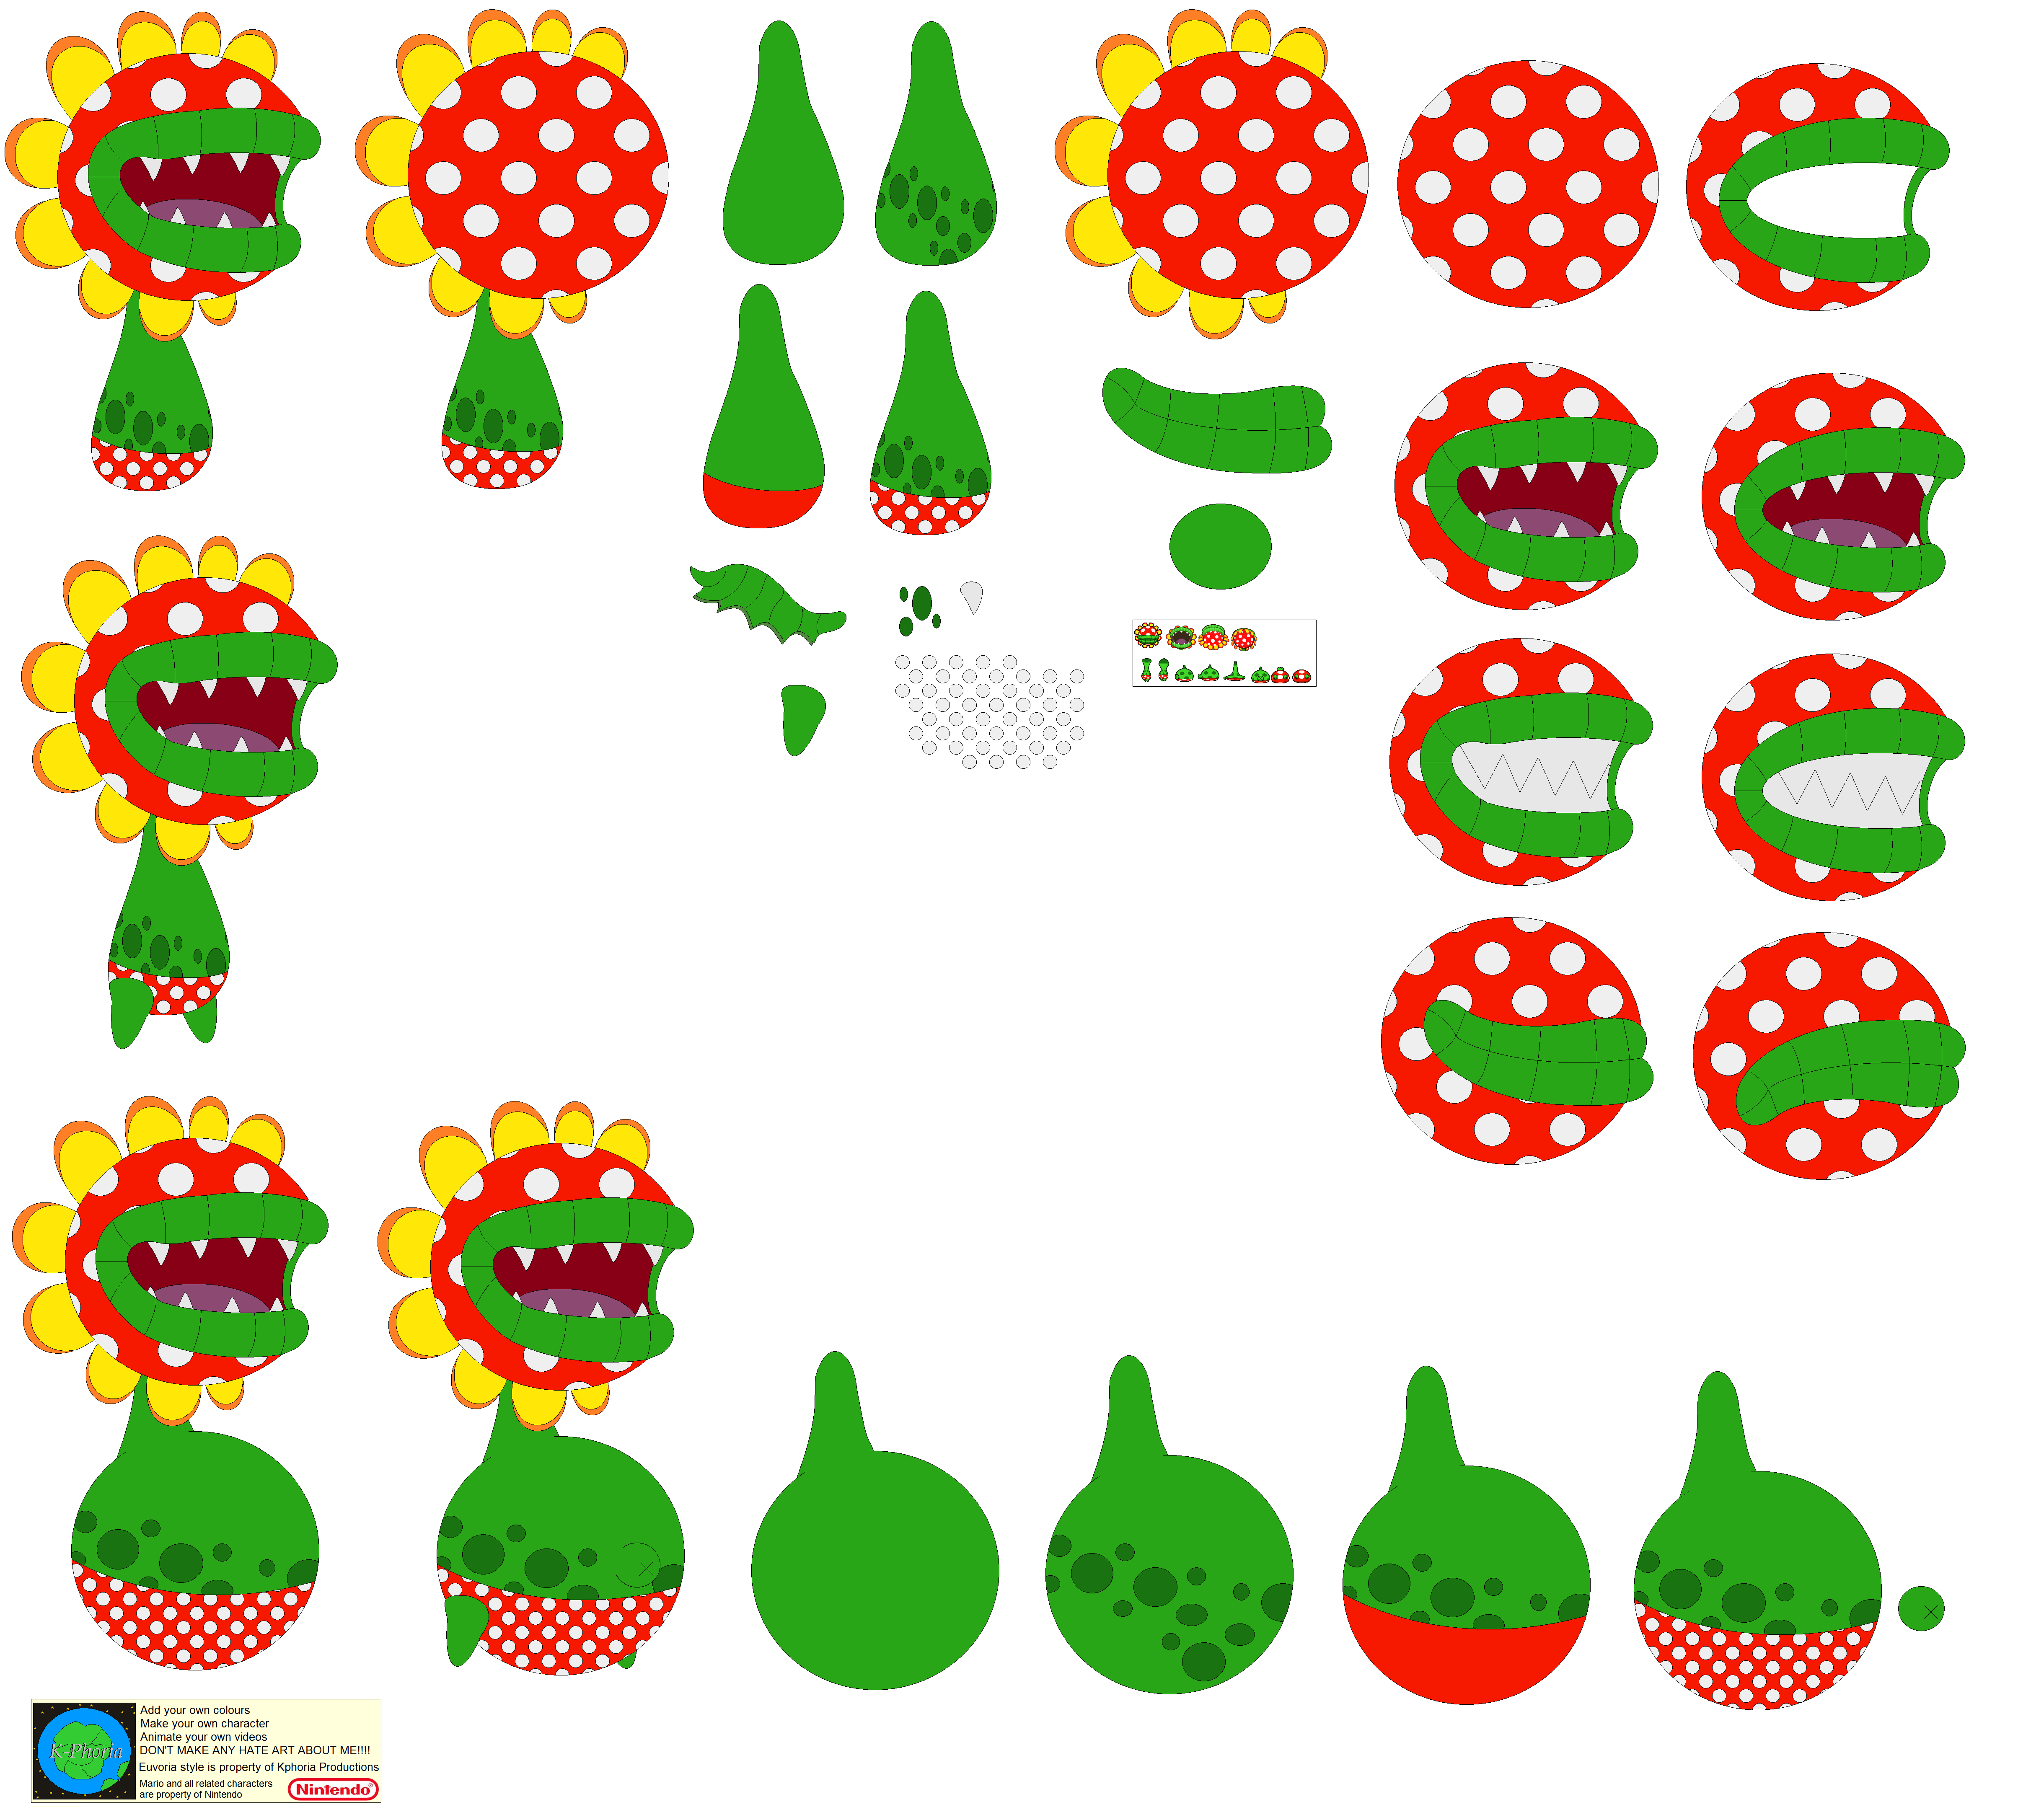 Character Builder-Petey Piranha By Kphoria On DeviantArt